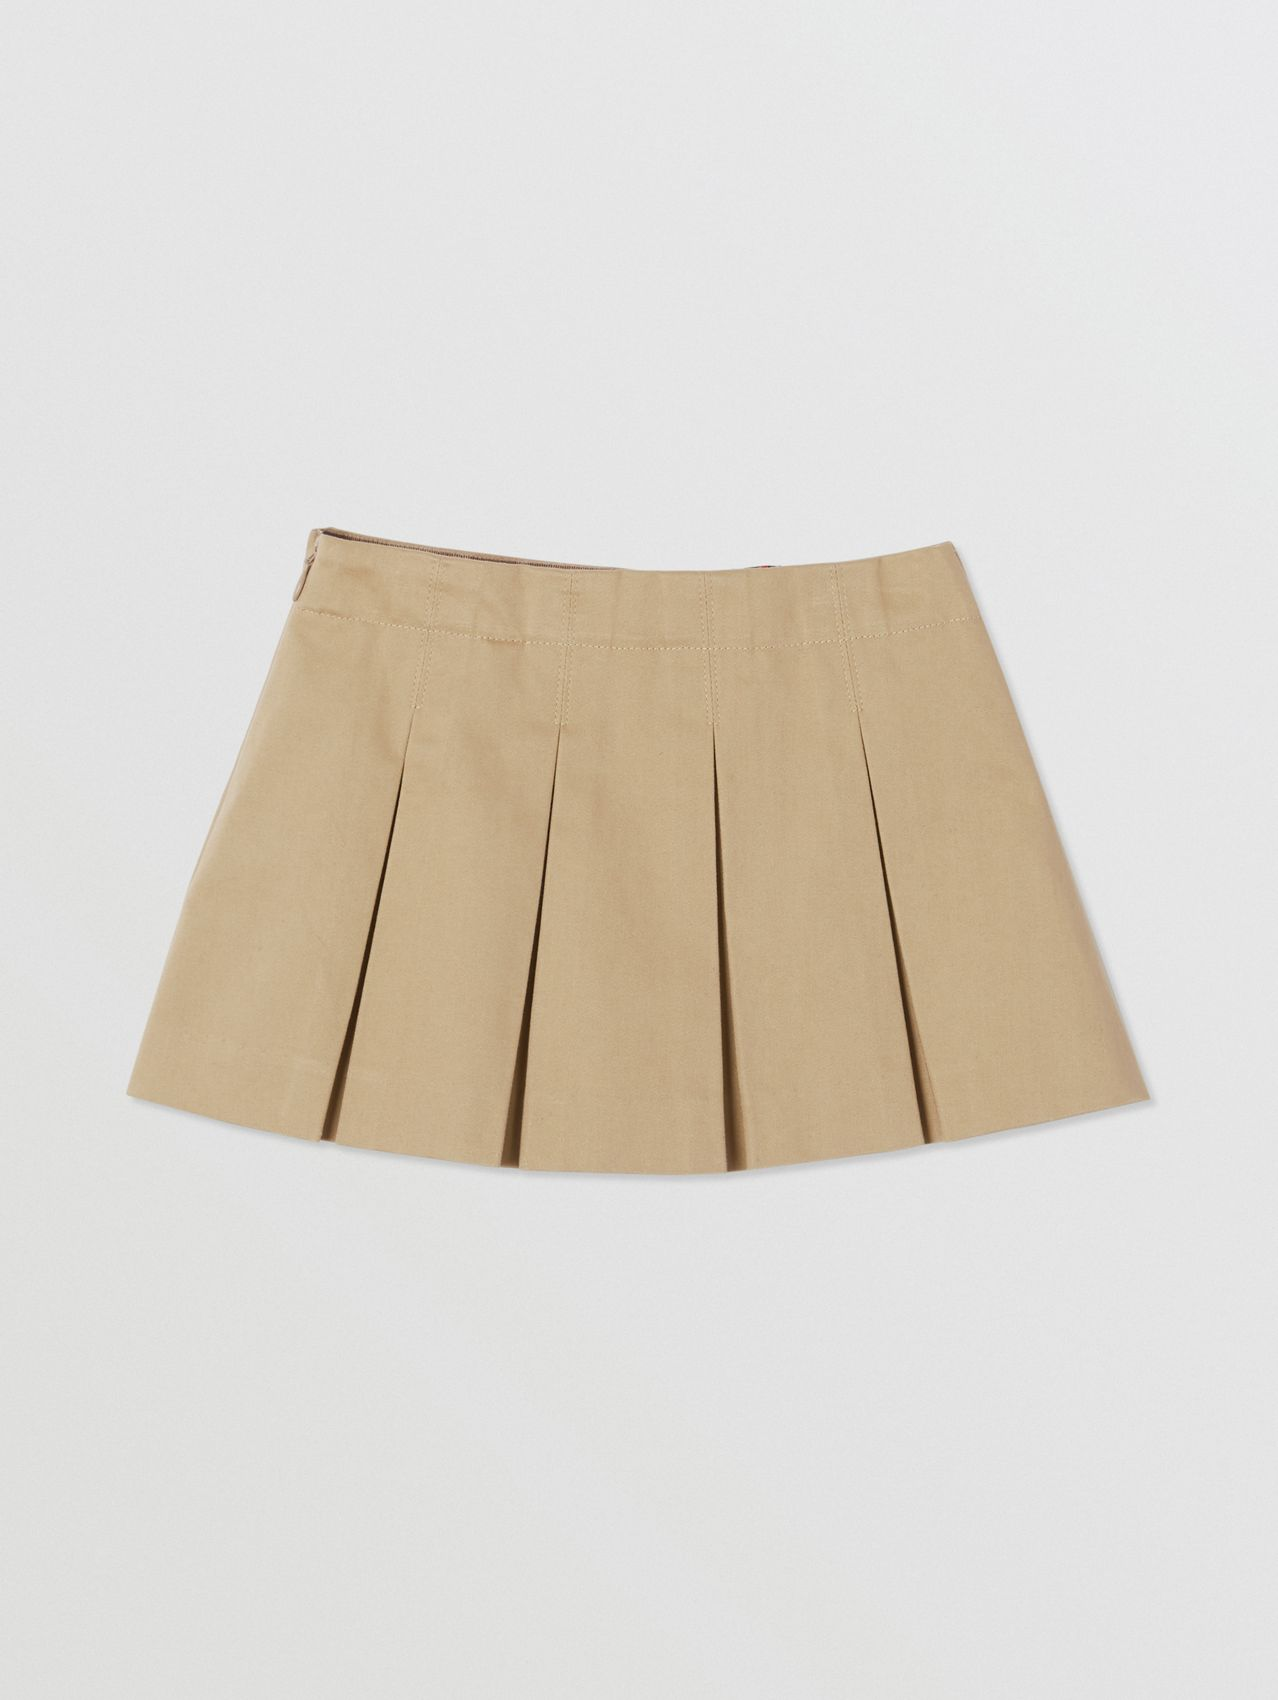 Monogram Stripe Print Box-pleated Cotton Skirt (Honey)